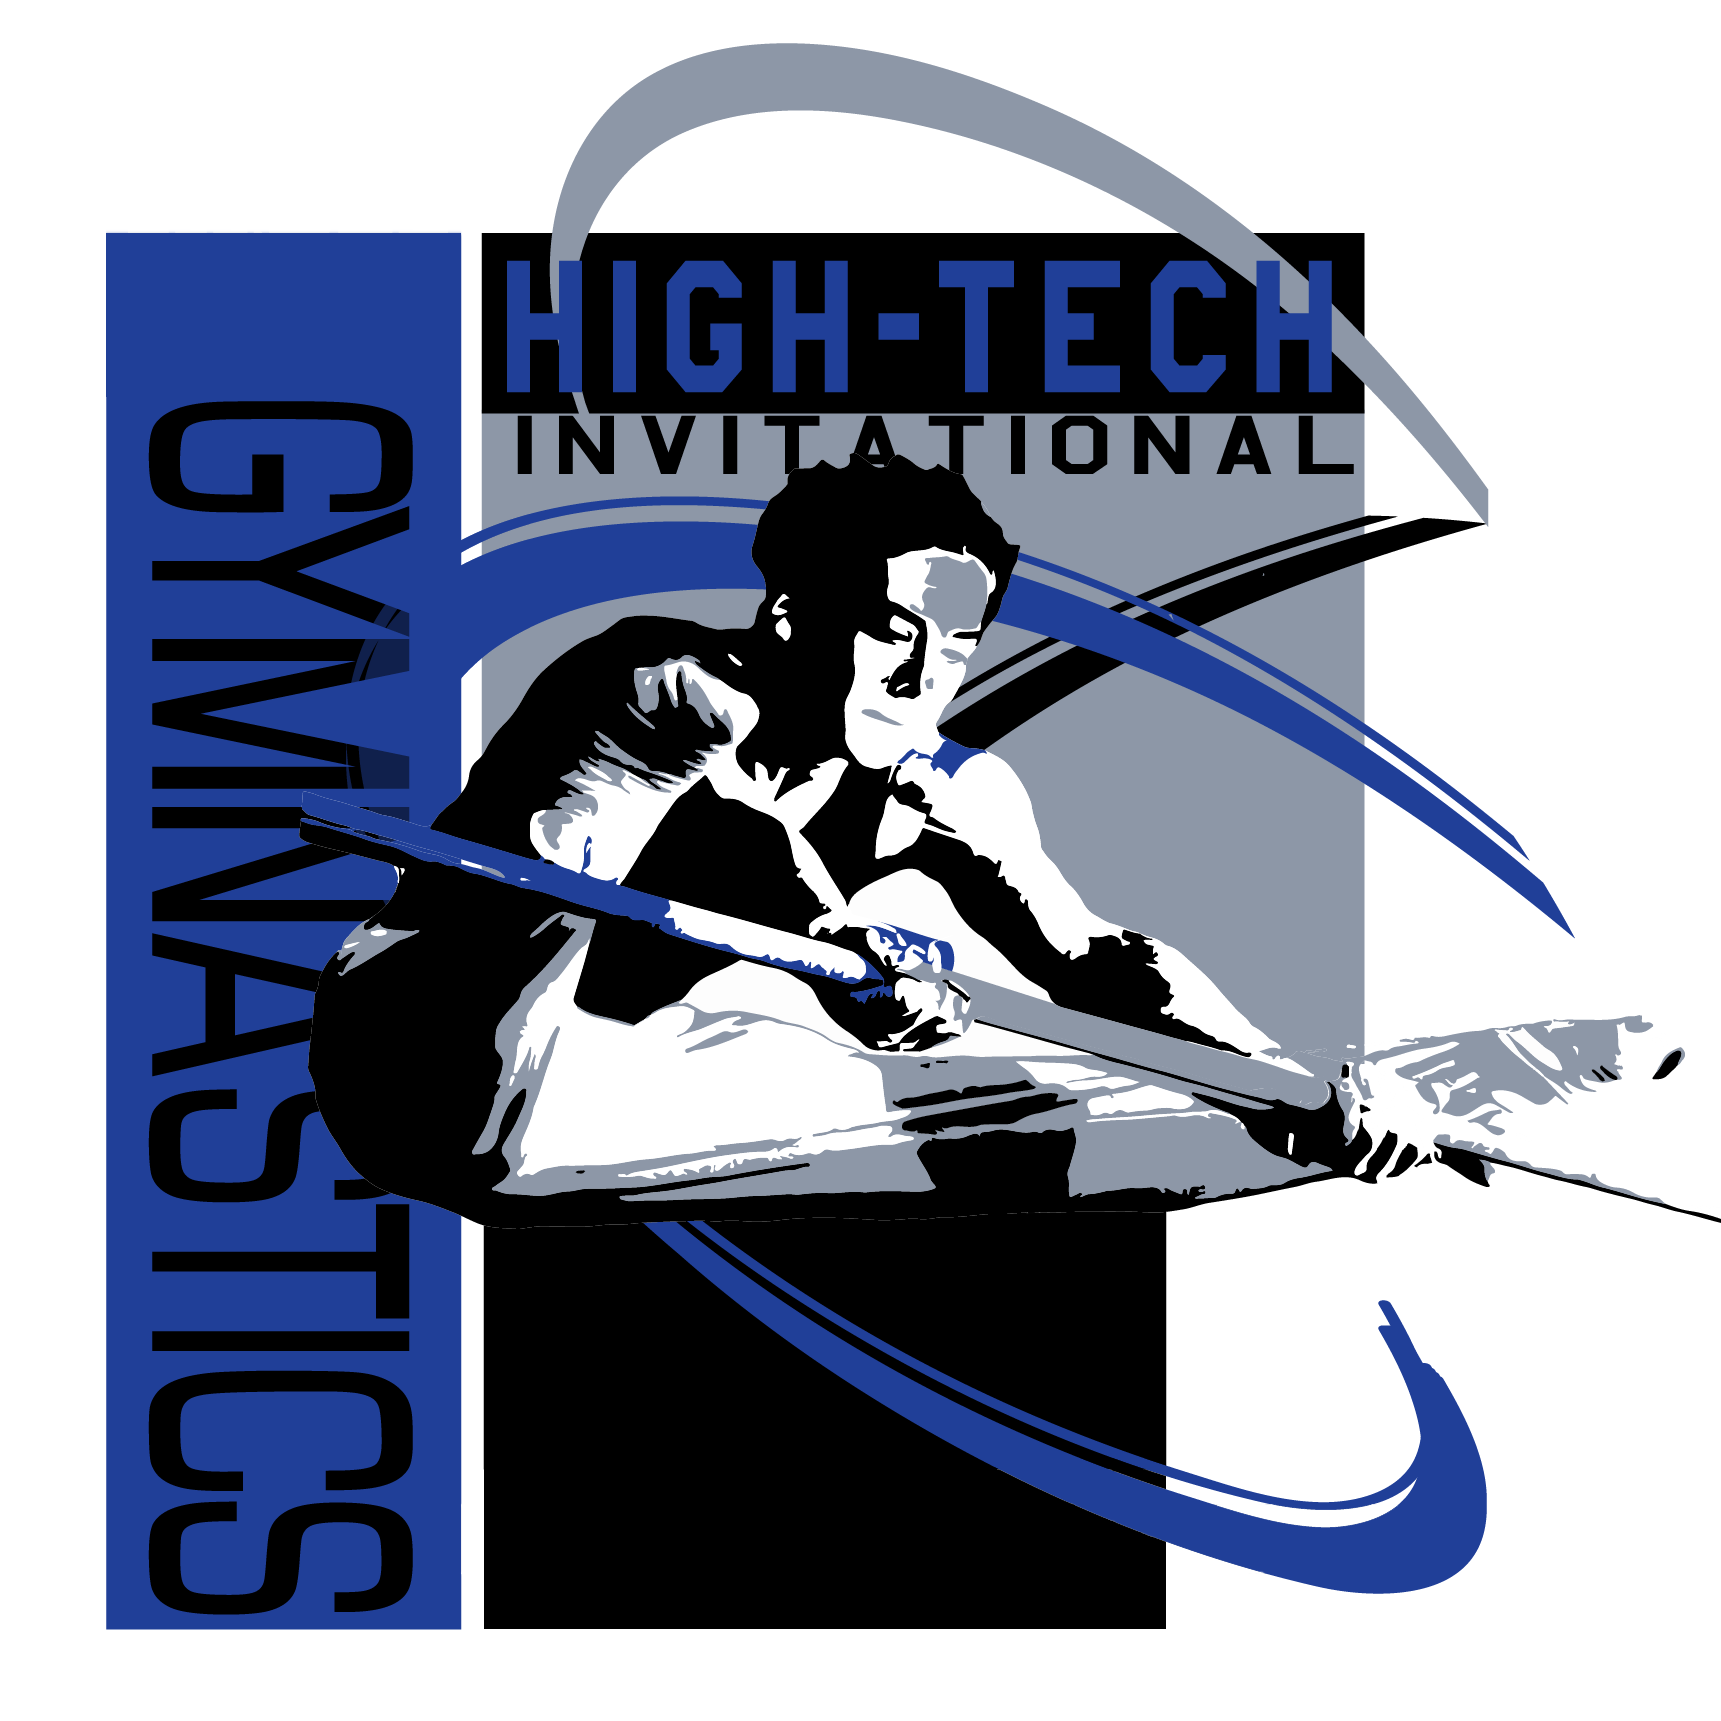 CA HIGH-TECH INVITATIONAL Feb2017